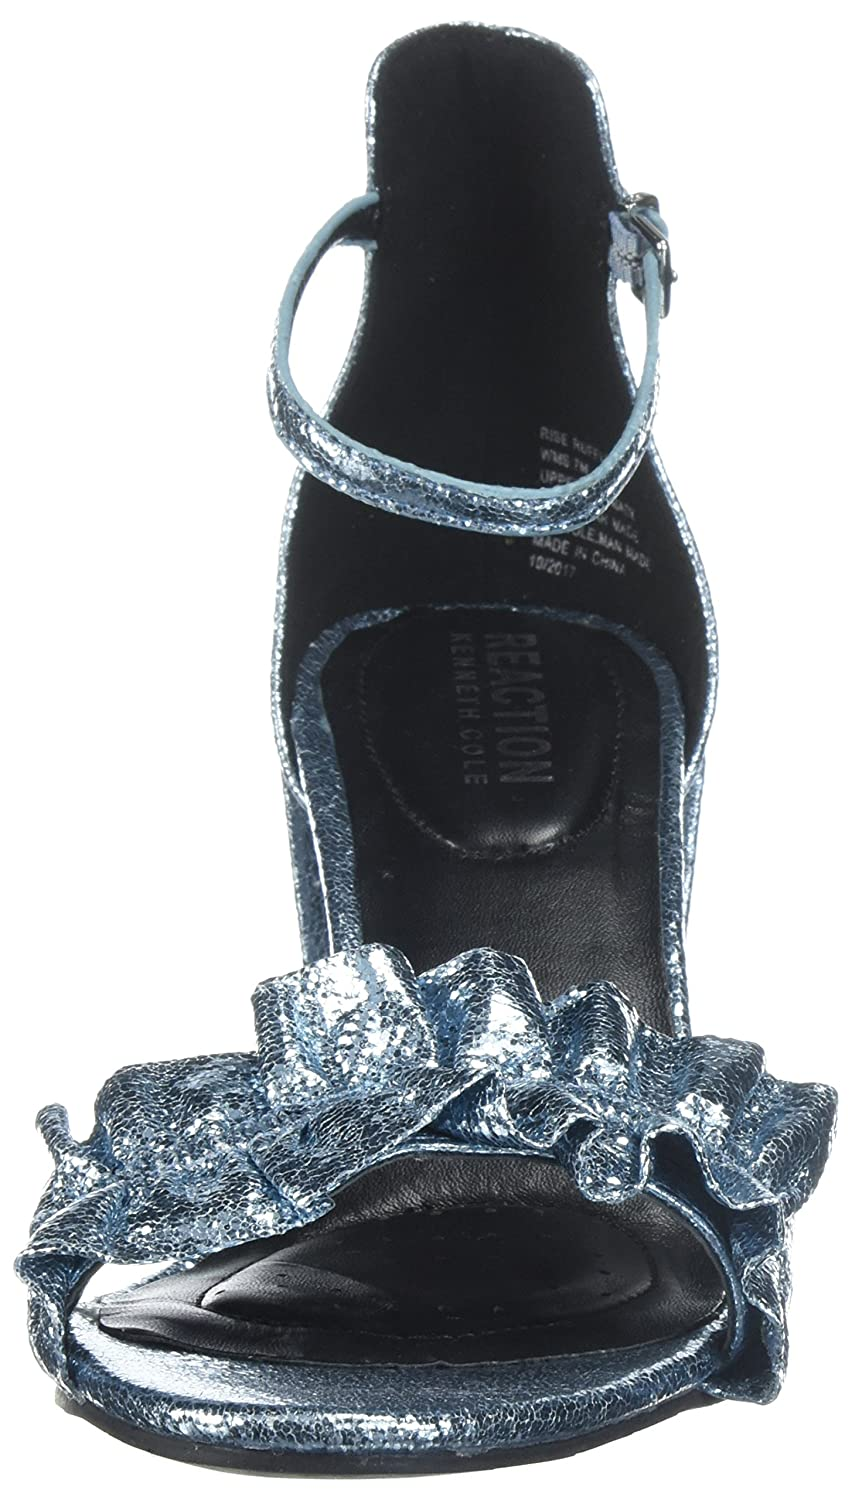 41fc67d5107 Kenneth Cole Reaction Women s Rise Ruffle Strap Open Toe Dress Sandal  Heeled  Buy Online at Low Prices in India - Amazon.in